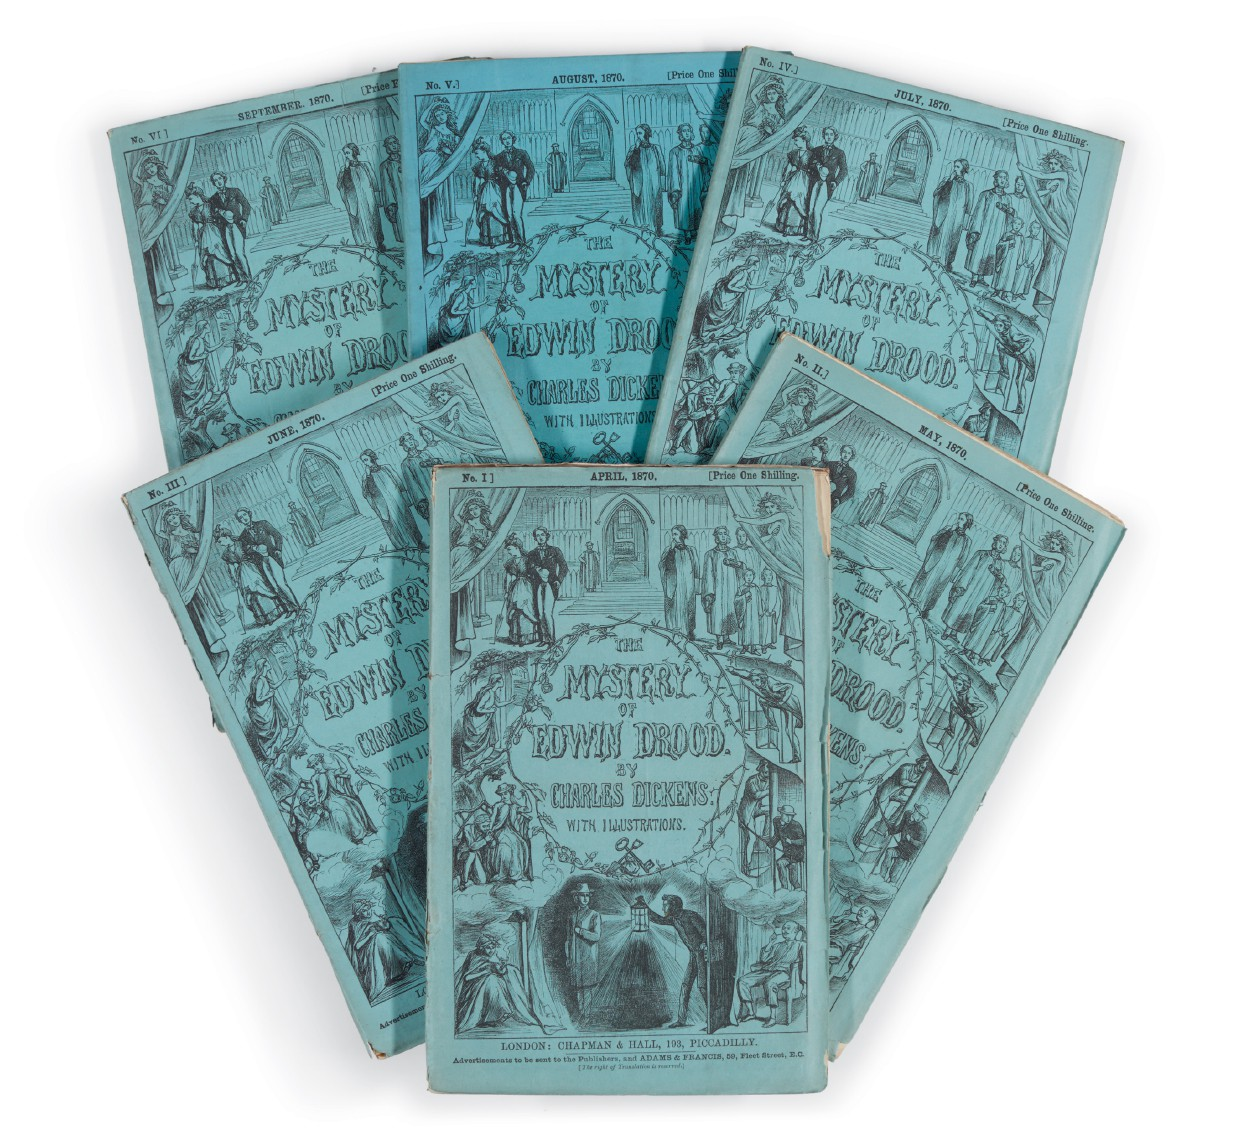 Dickens, The Mystery of Edwin Drood, 1870, first edition, first issue in original 6 parts